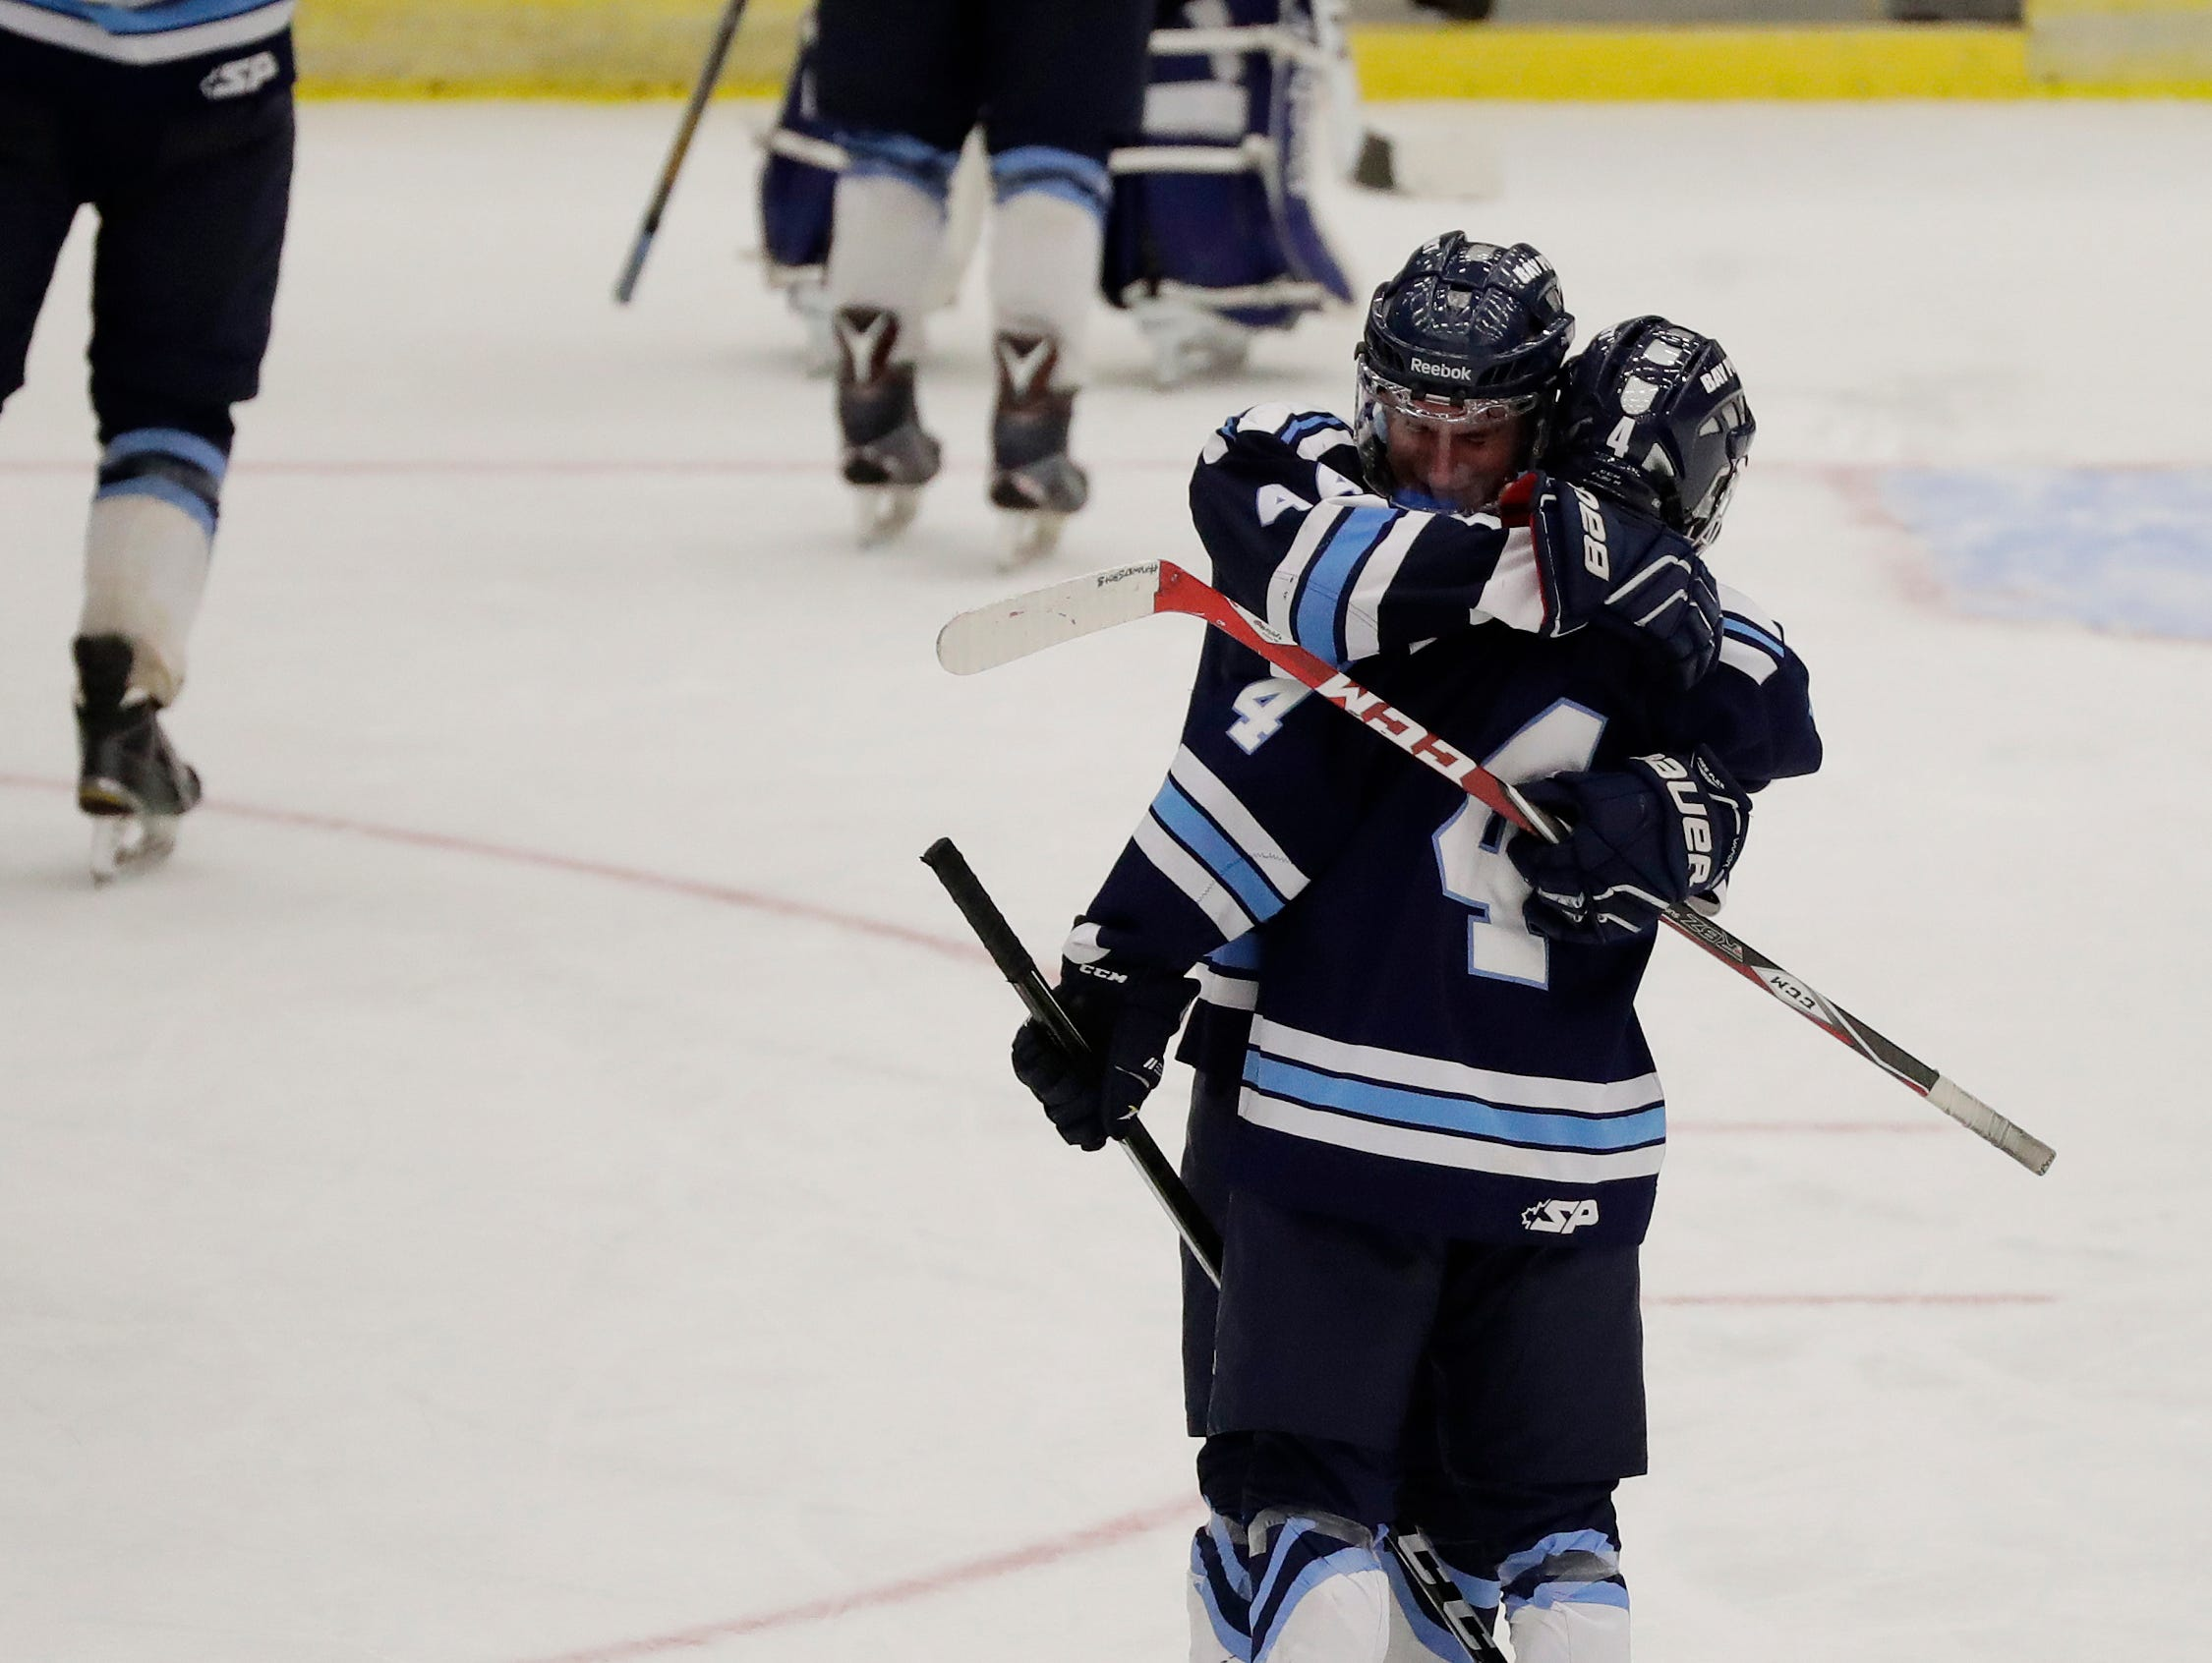 Bay Port forward Mike Messerschmidt (4) hugs teammate Max Moore (44) after a quarterfinal match against Sun Prairie at the WIAA state hockey tournament at the Alliant Energy Center on Thursday. The Pirates lost 3-2 in their first state appearance.